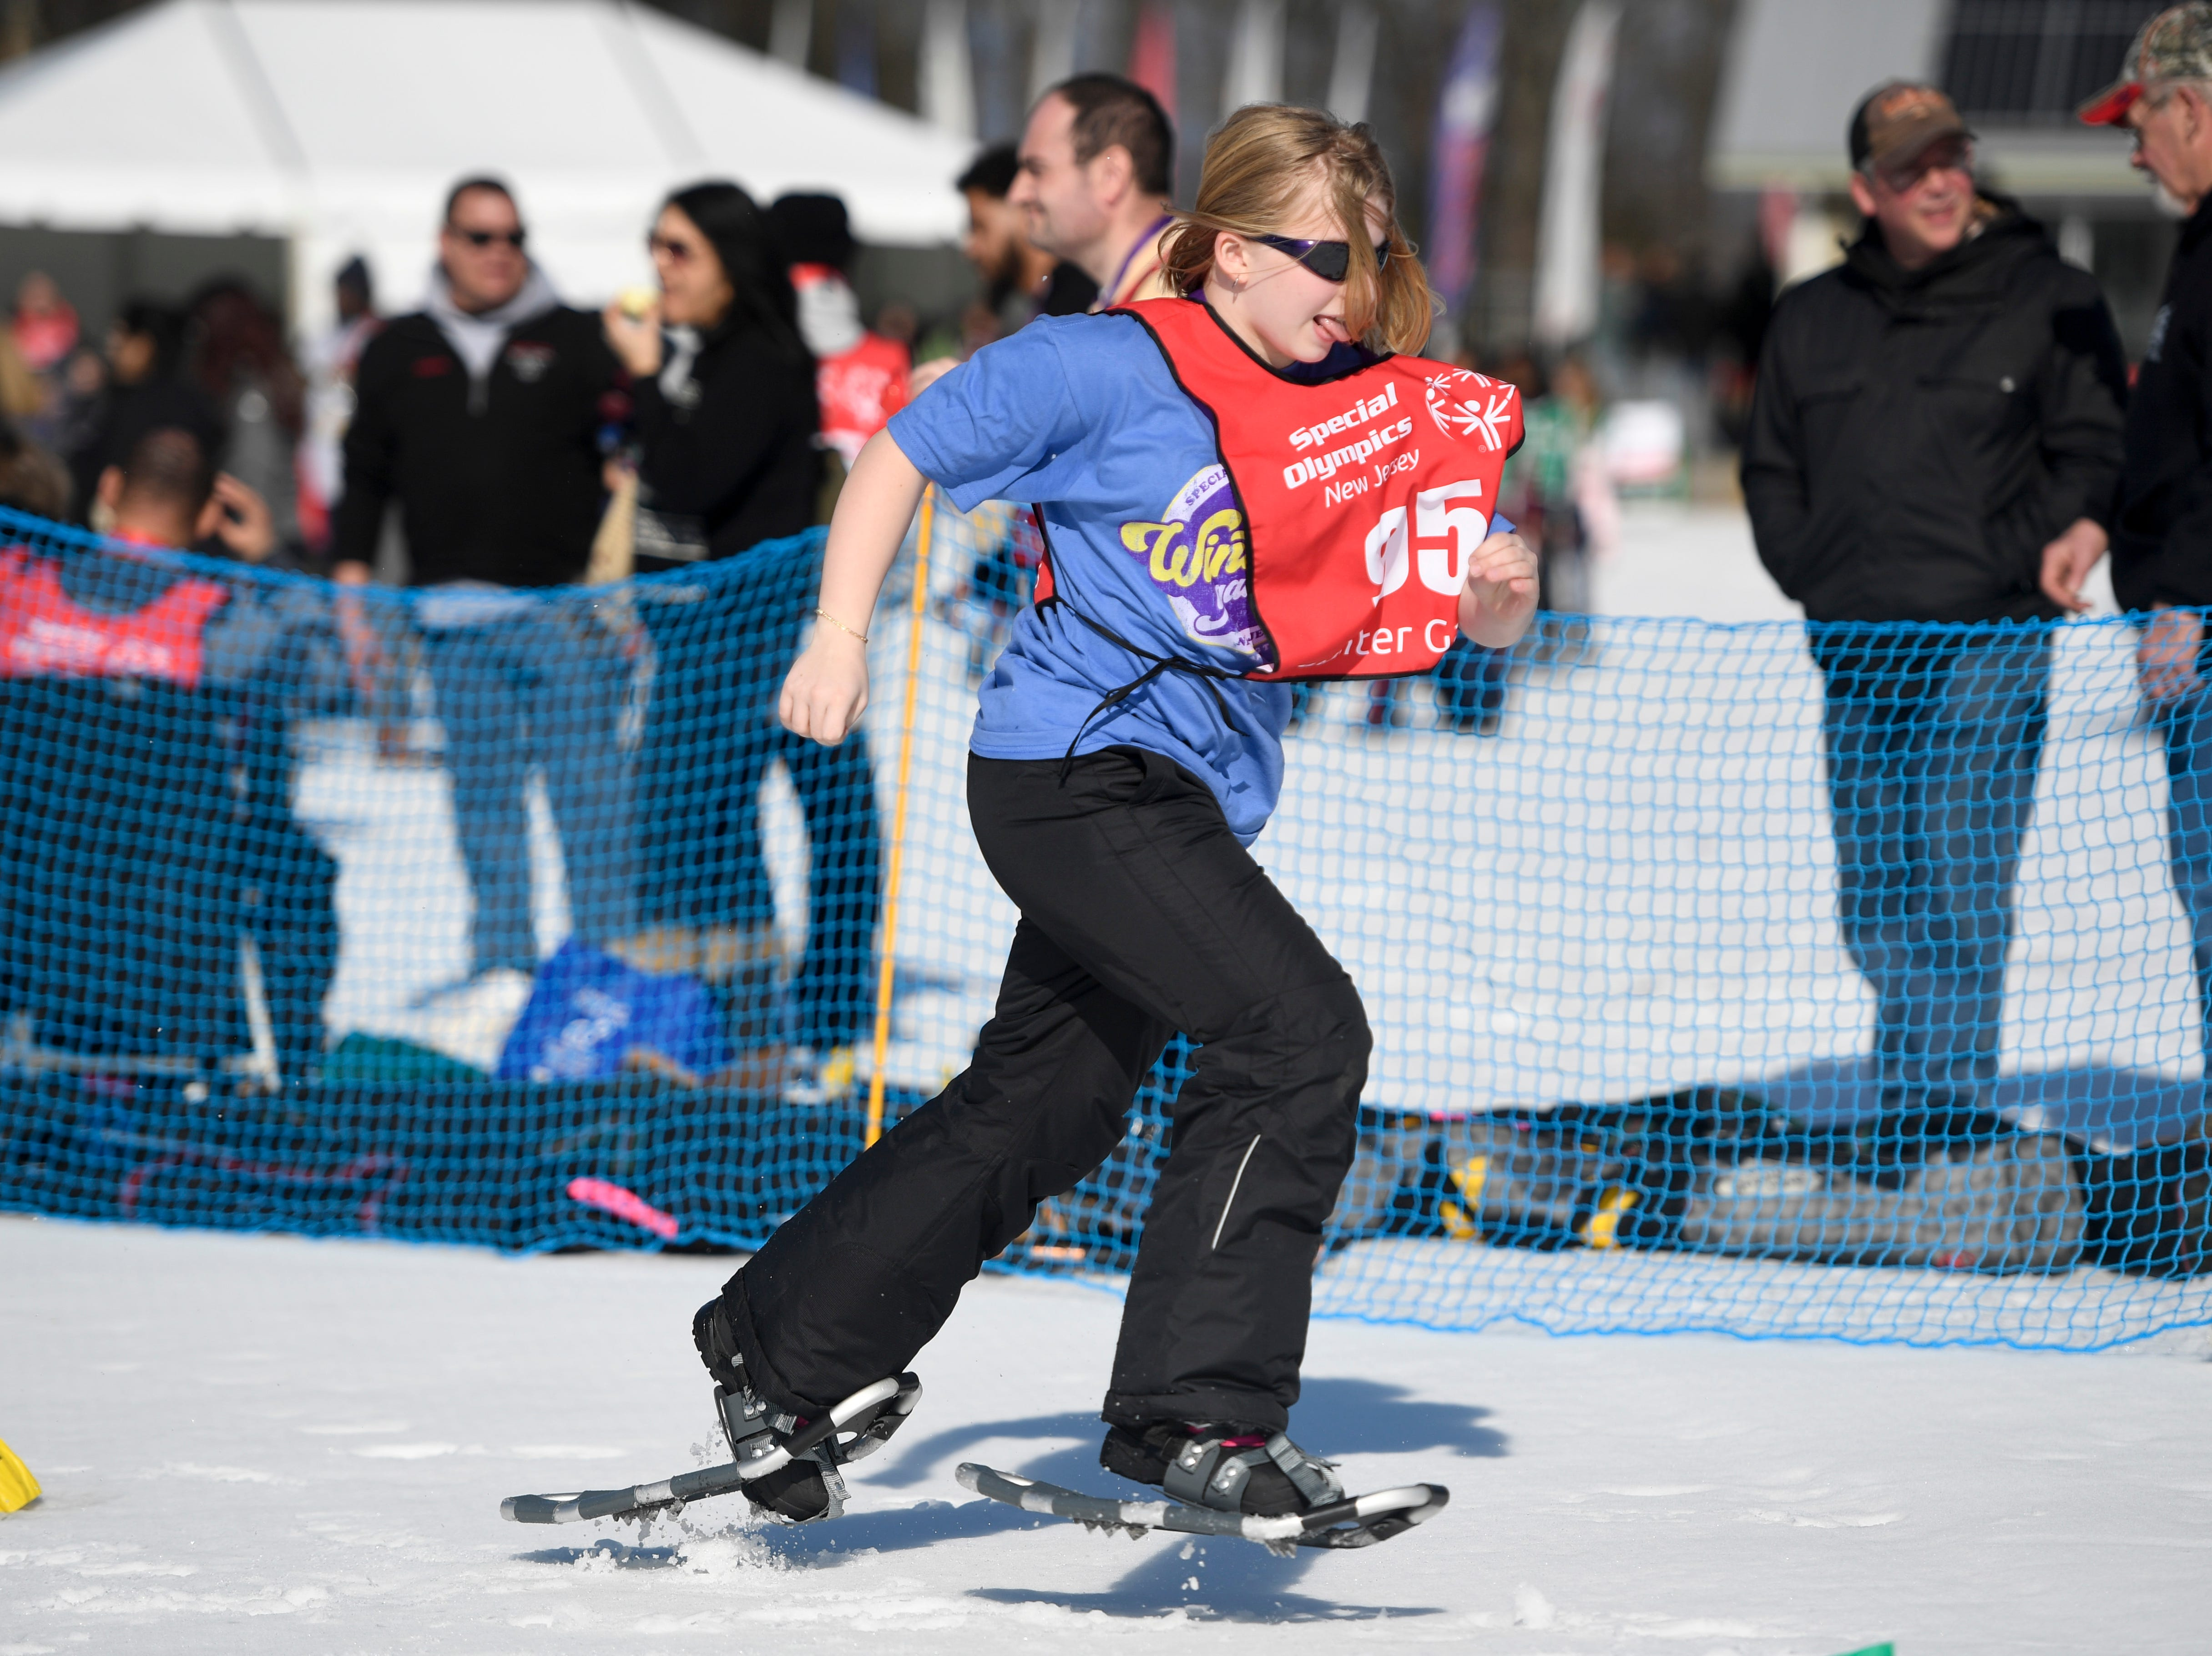 Lexi Bonin of Garfield competes in the snowshoeing 200-meter during the Special Olympics New Jersey 2019 Winter Games on Tuesday, Feb. 5, 2019, in Vernon.